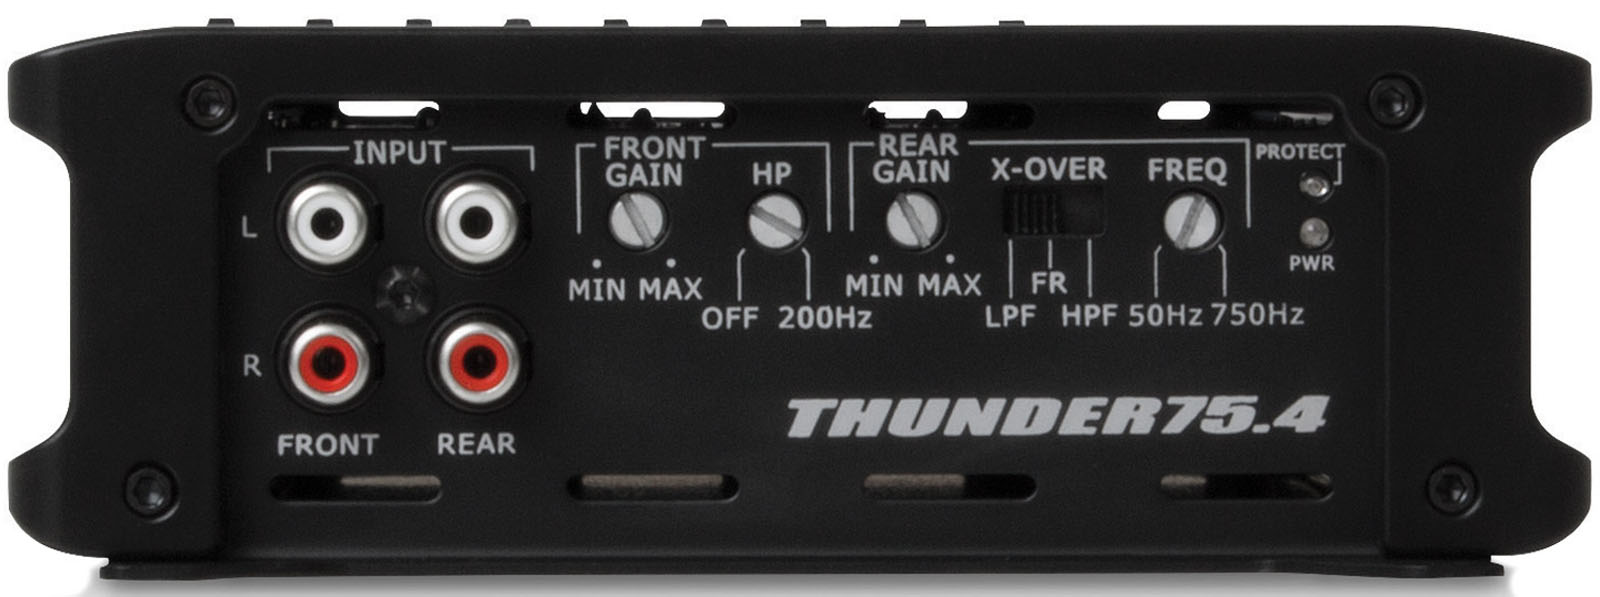 Thunder Series 400 Watt Rms 4 Channel Class Ab Amplifier Mtx Audio Wiring Kit 1600w Digital Bridgeable Pro Don T Serious About Sound